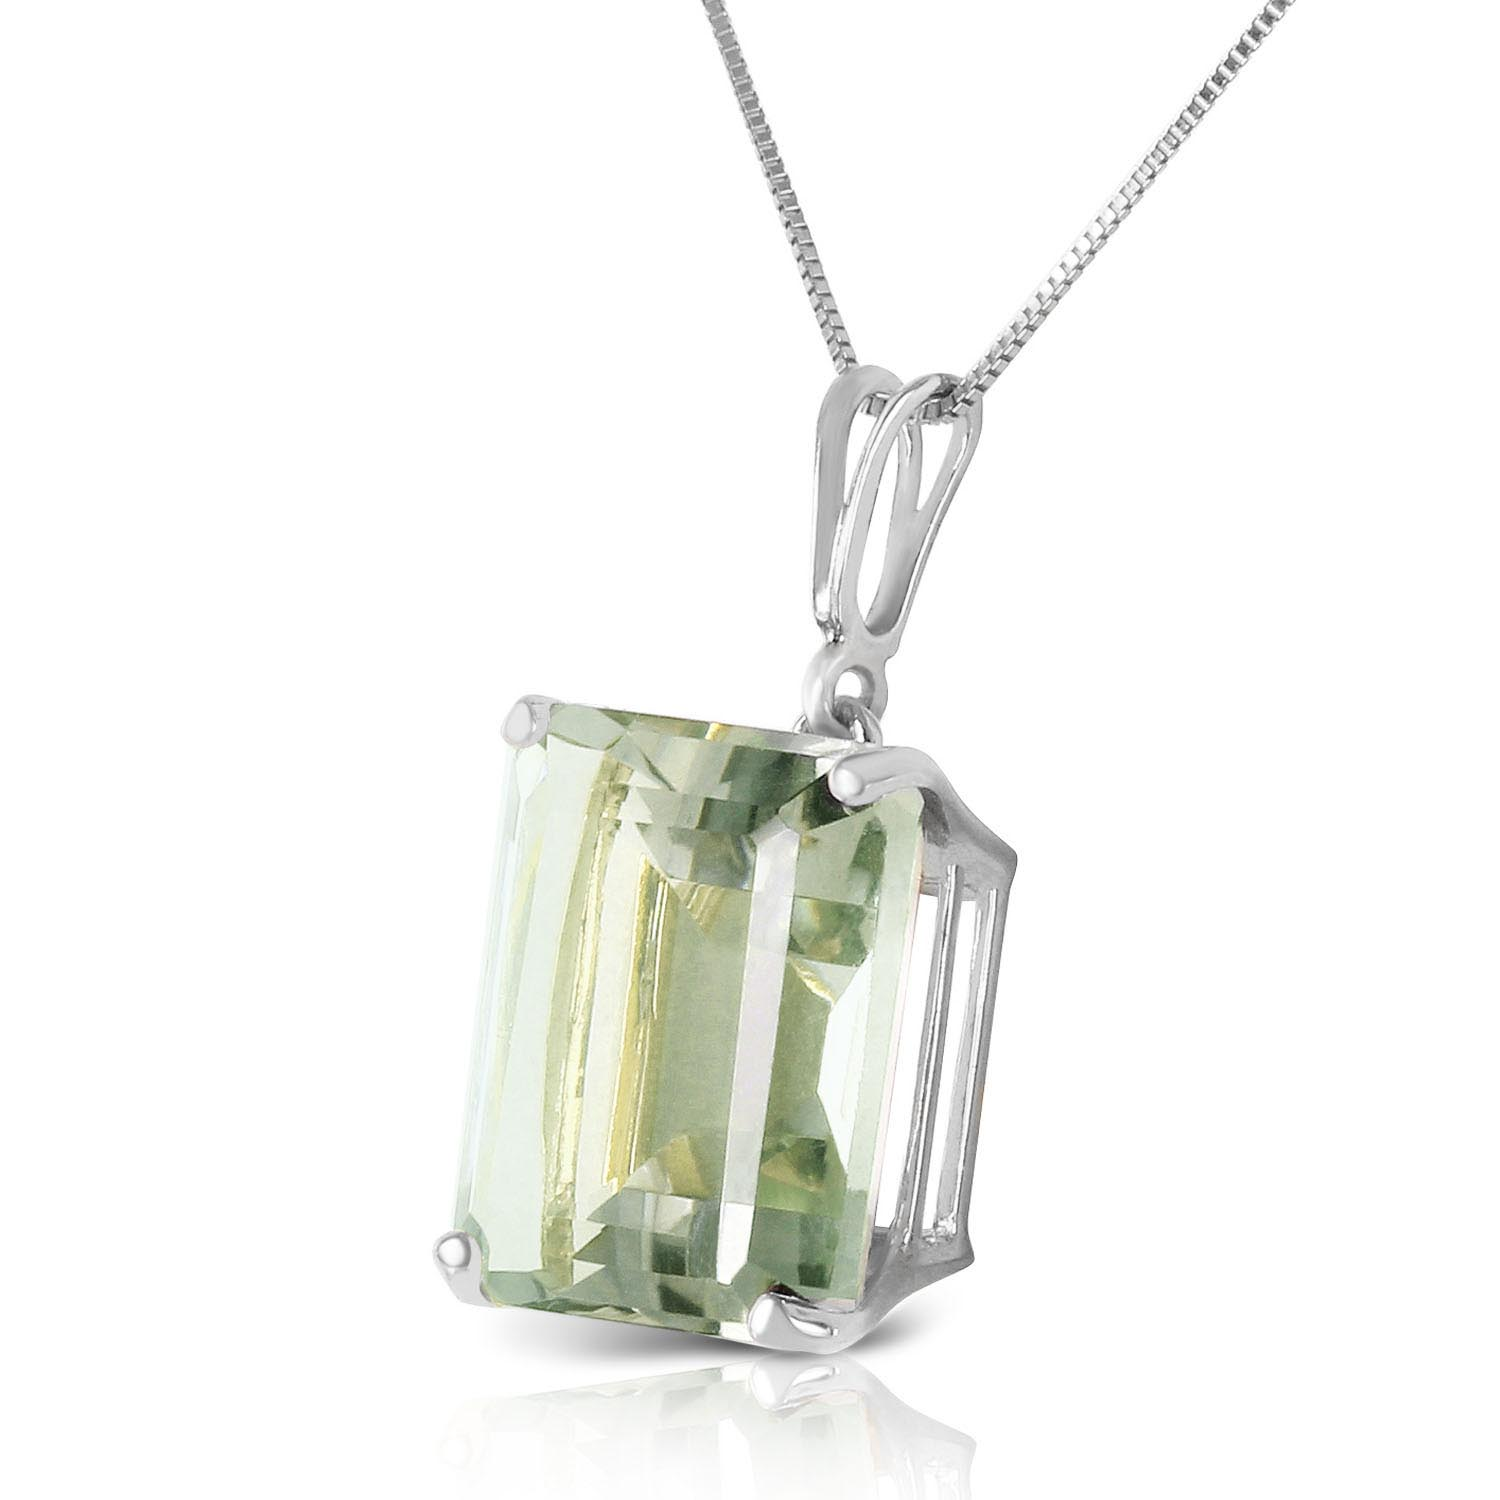 Green Amethyst Pendant Necklace 6.5ct in 9ct White Gold